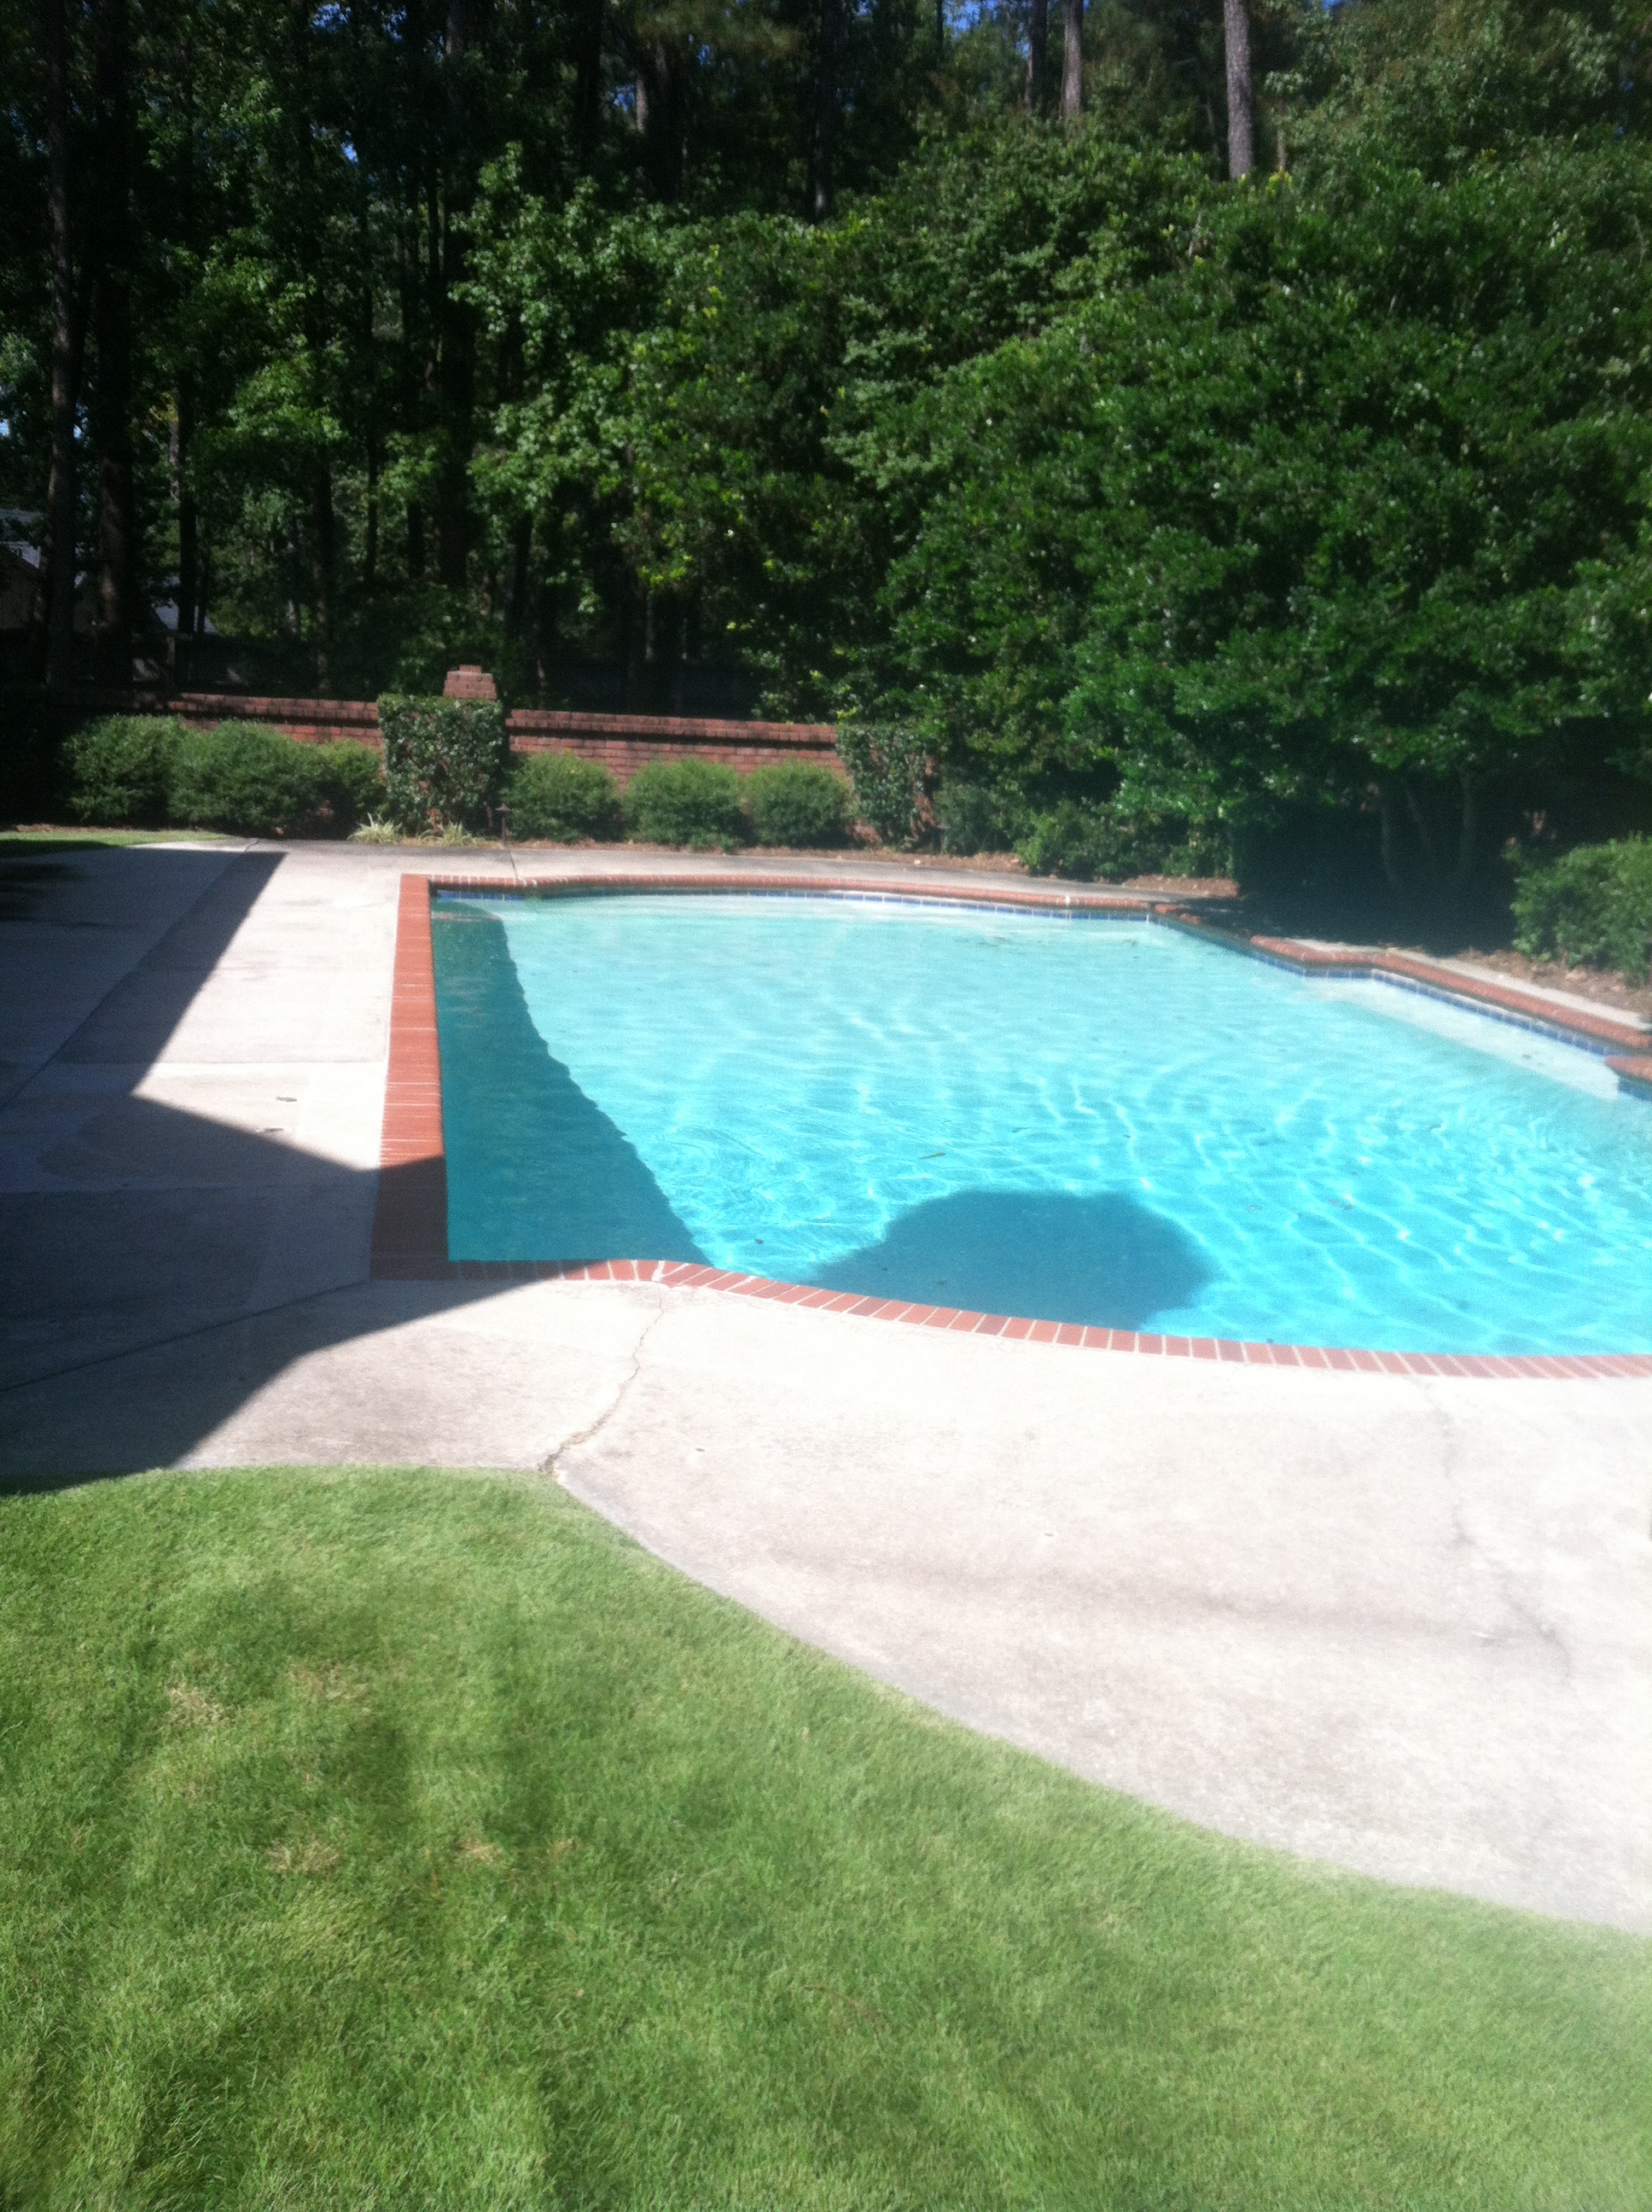 Elite Pool Maintenance, Drain and Clean Pool Service, gunite after